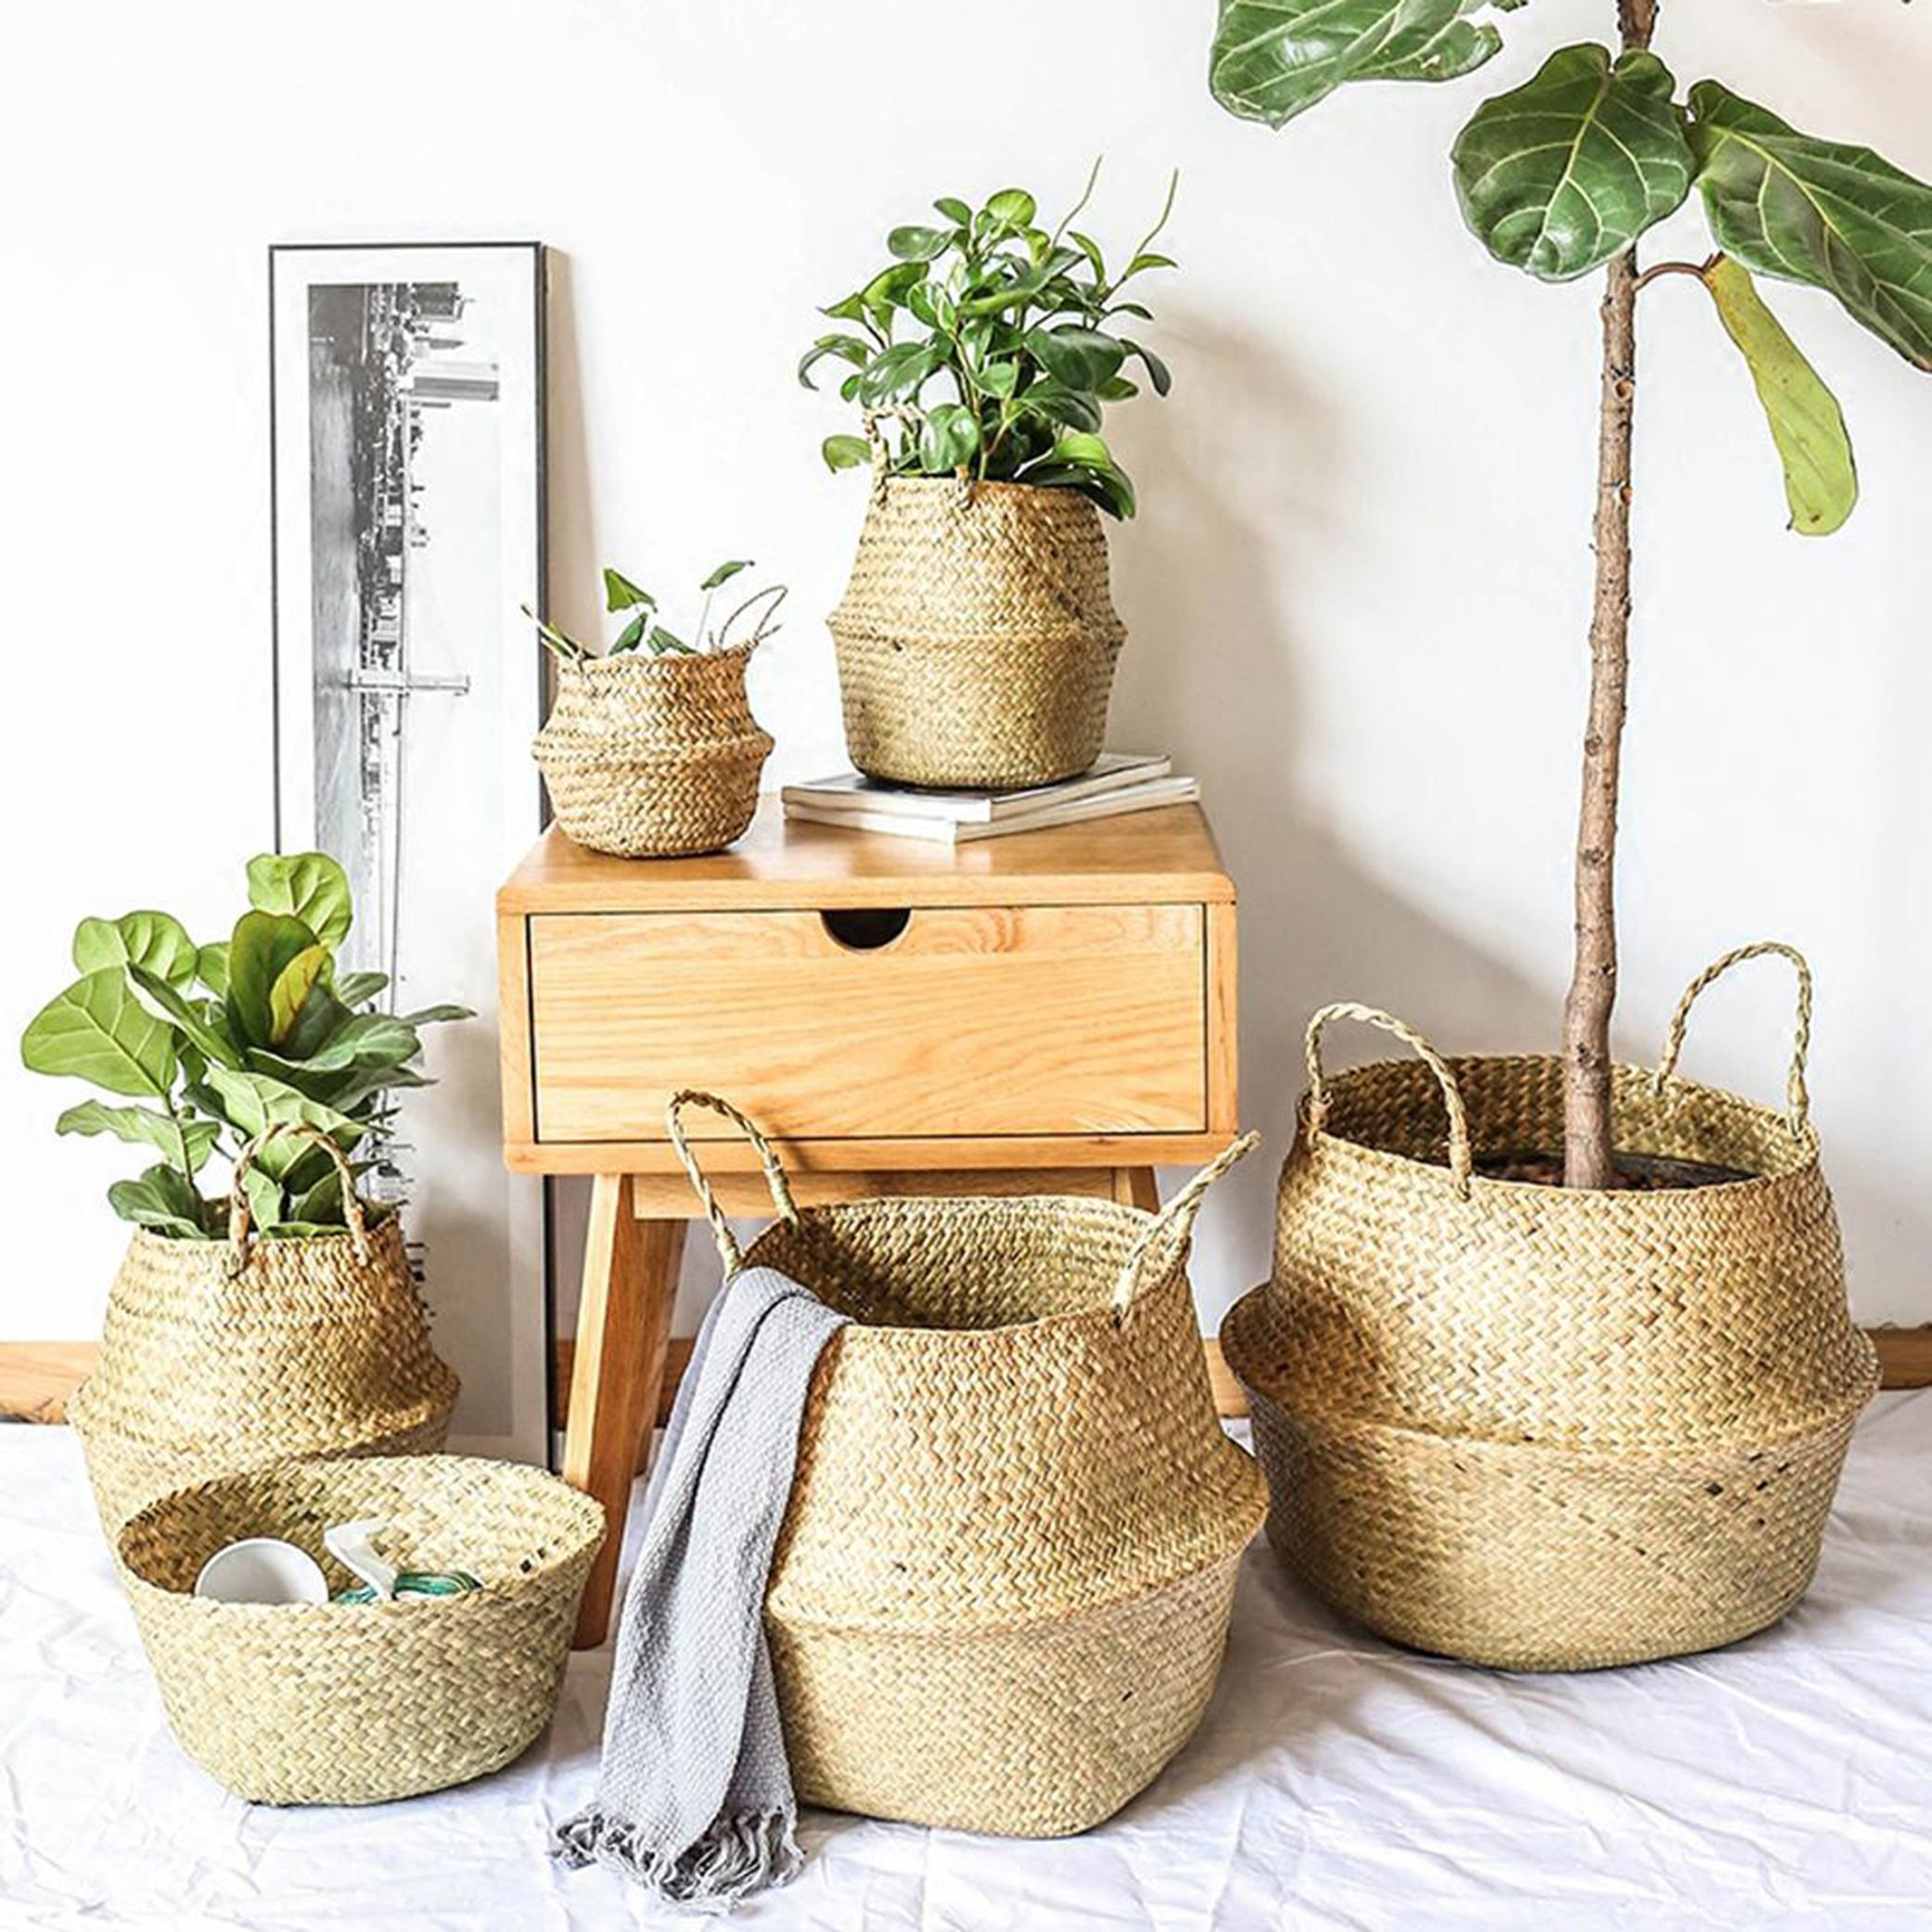 High quality best selling seagrass belly baskets with handle made in Viet Nam